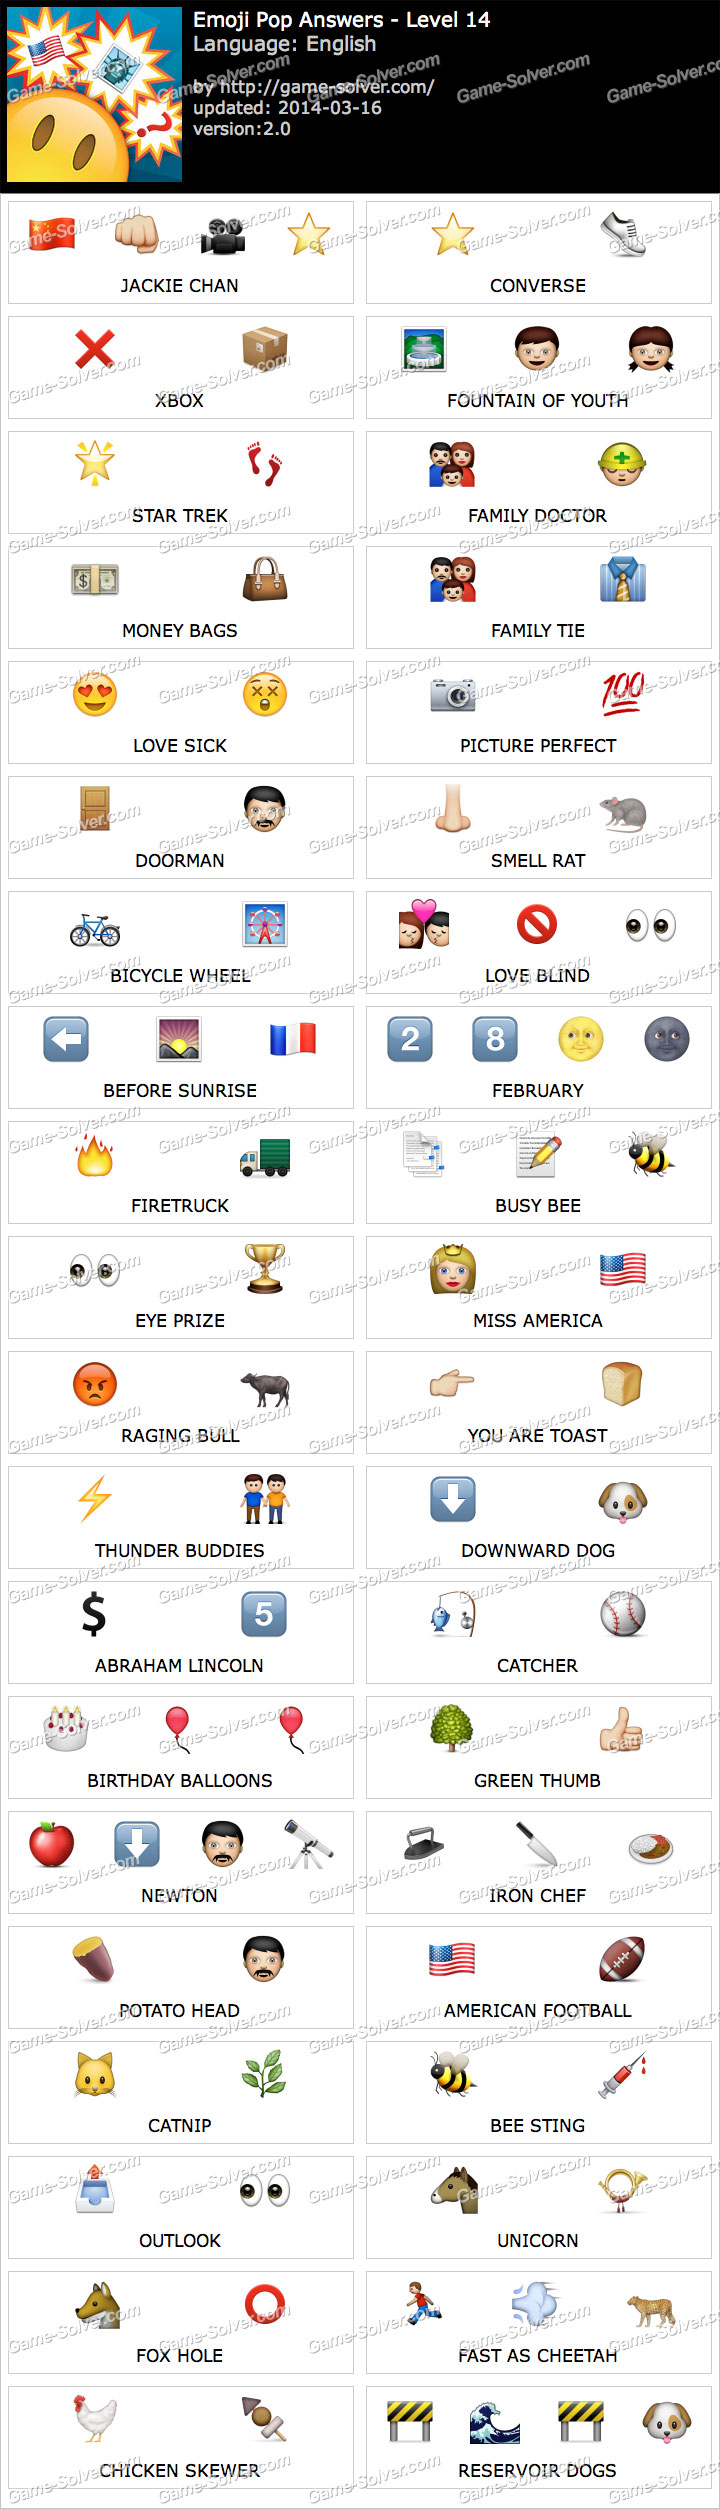 Emoji Pop Level 14